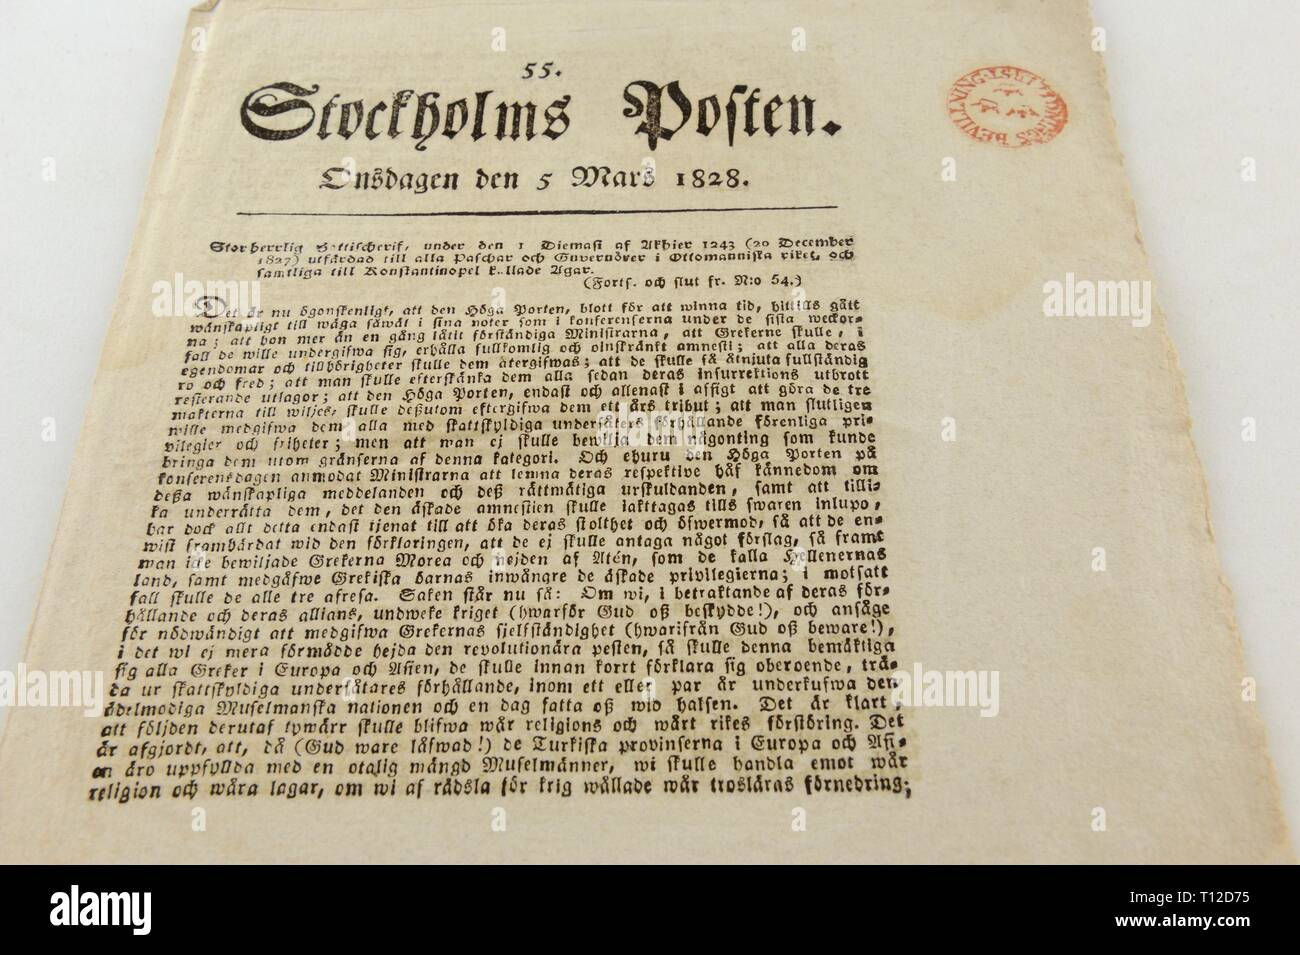 Stockholm Posten was a Swedish newspaper published in 1778 -1833. It became the leading newspaper in Sweden. At this time period when papers seldom h - Stock Image